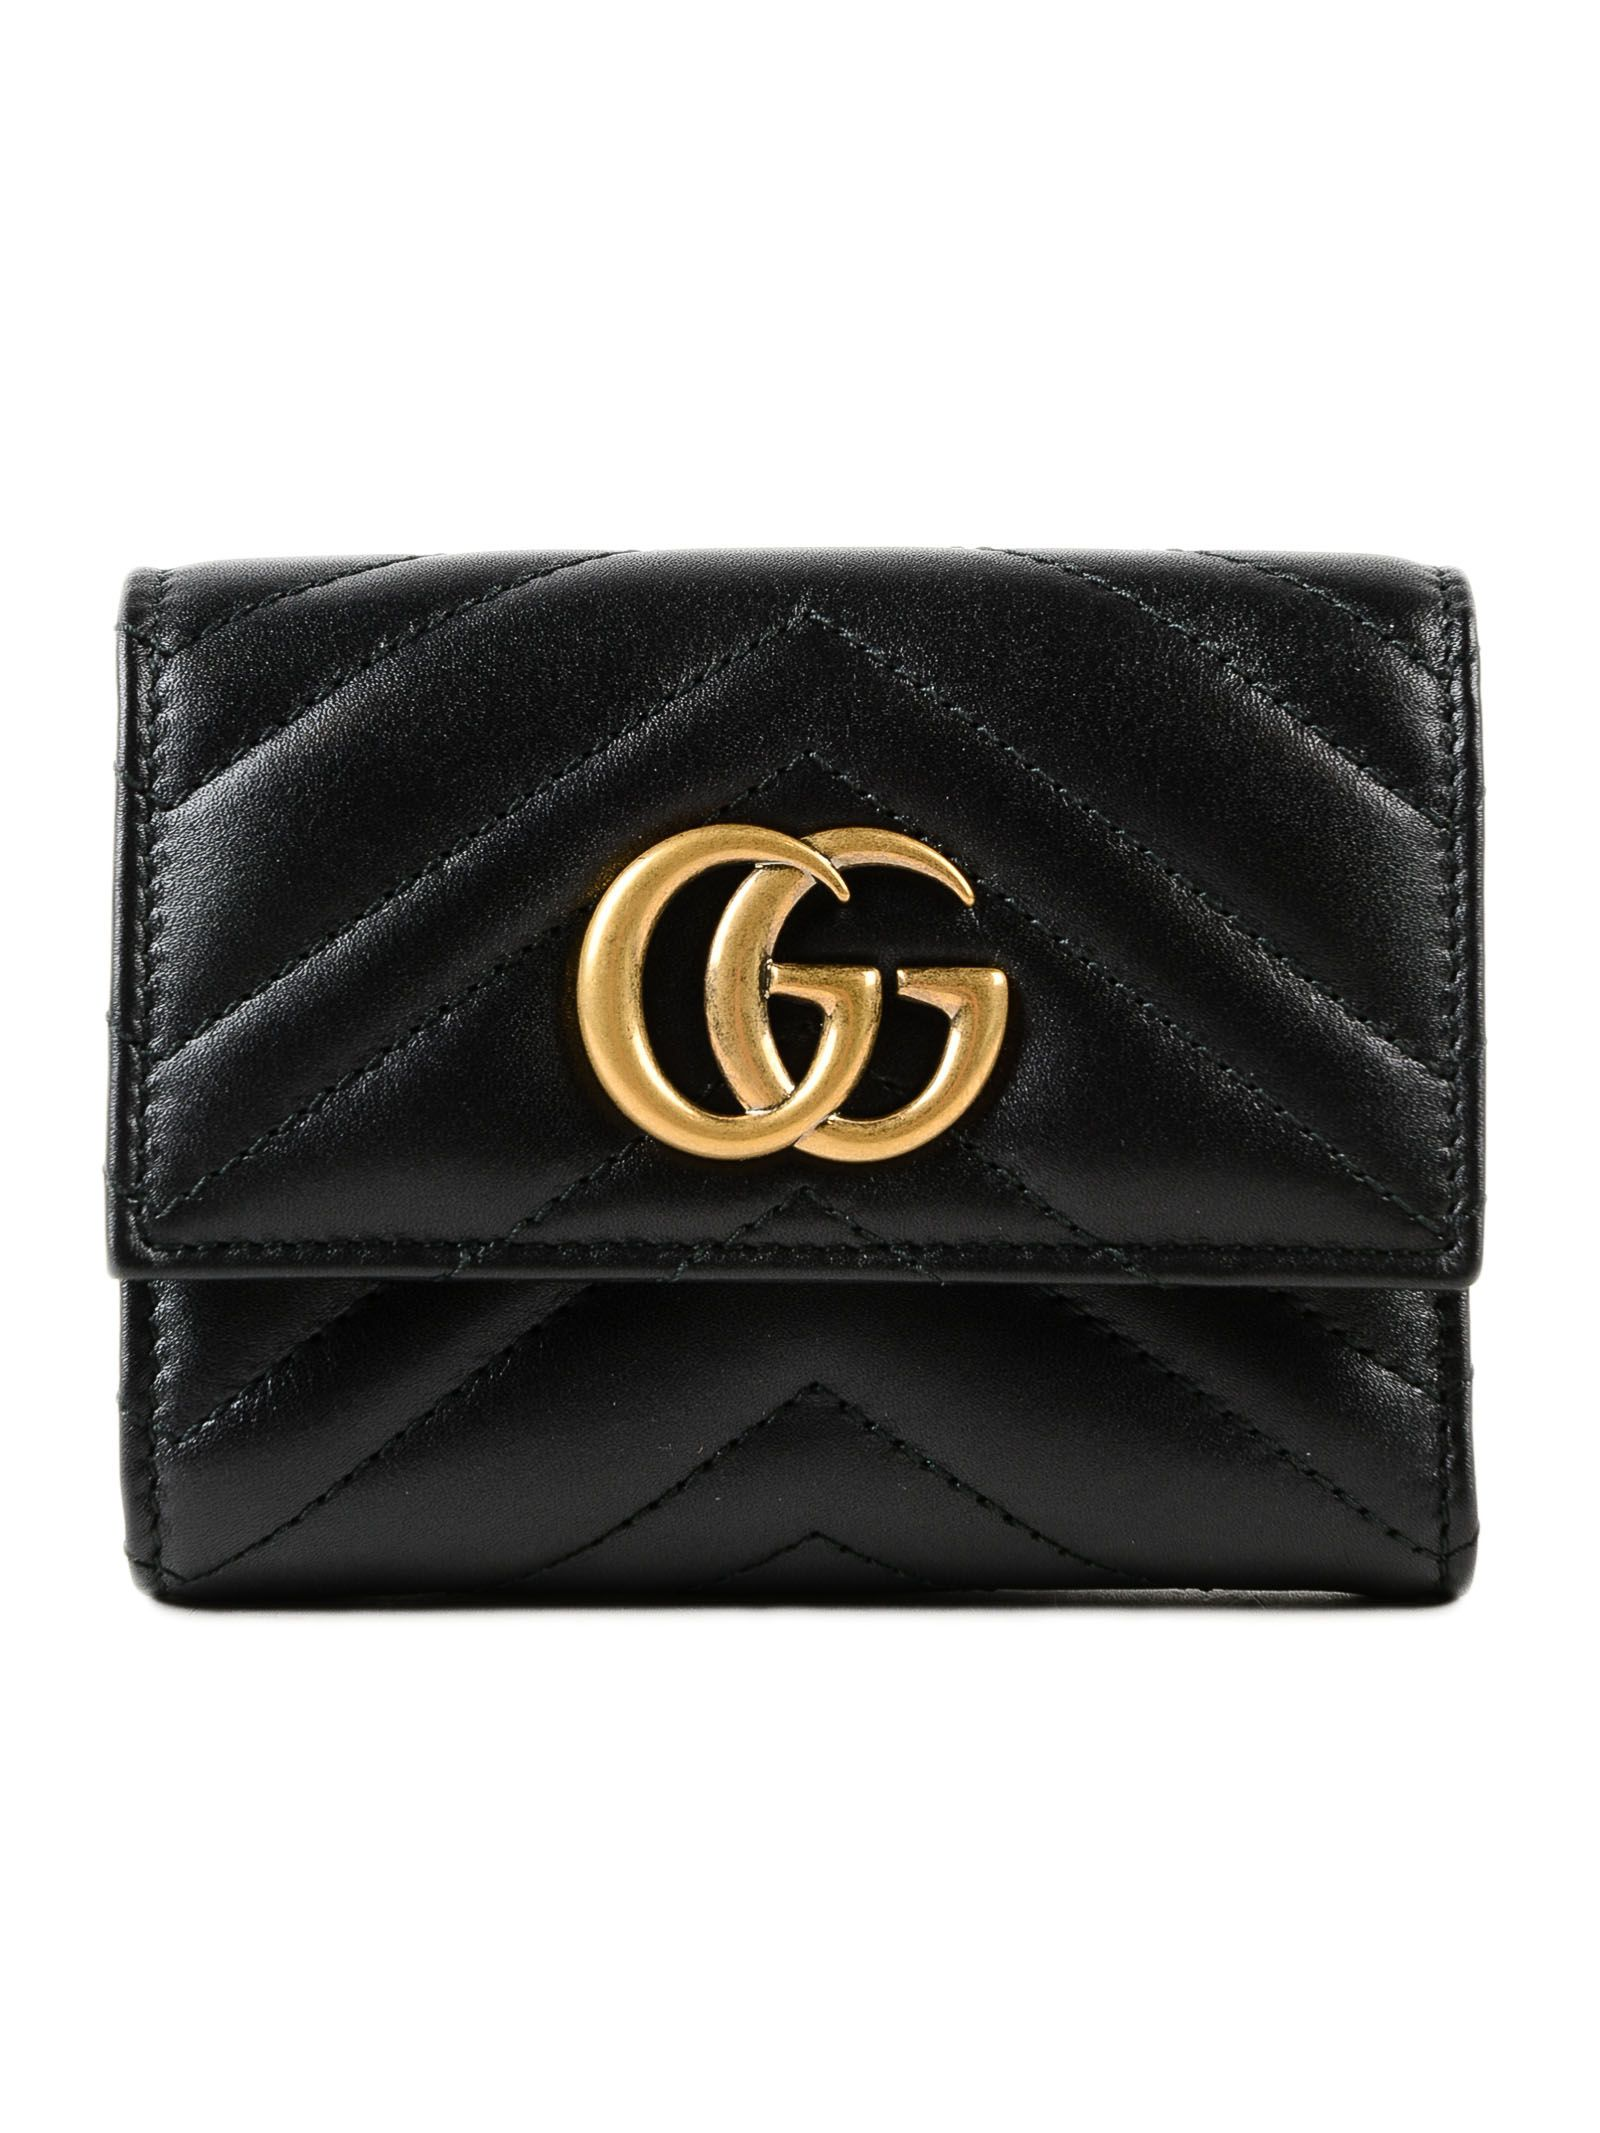 GG MARMONT 2.0 SMALL WALLET